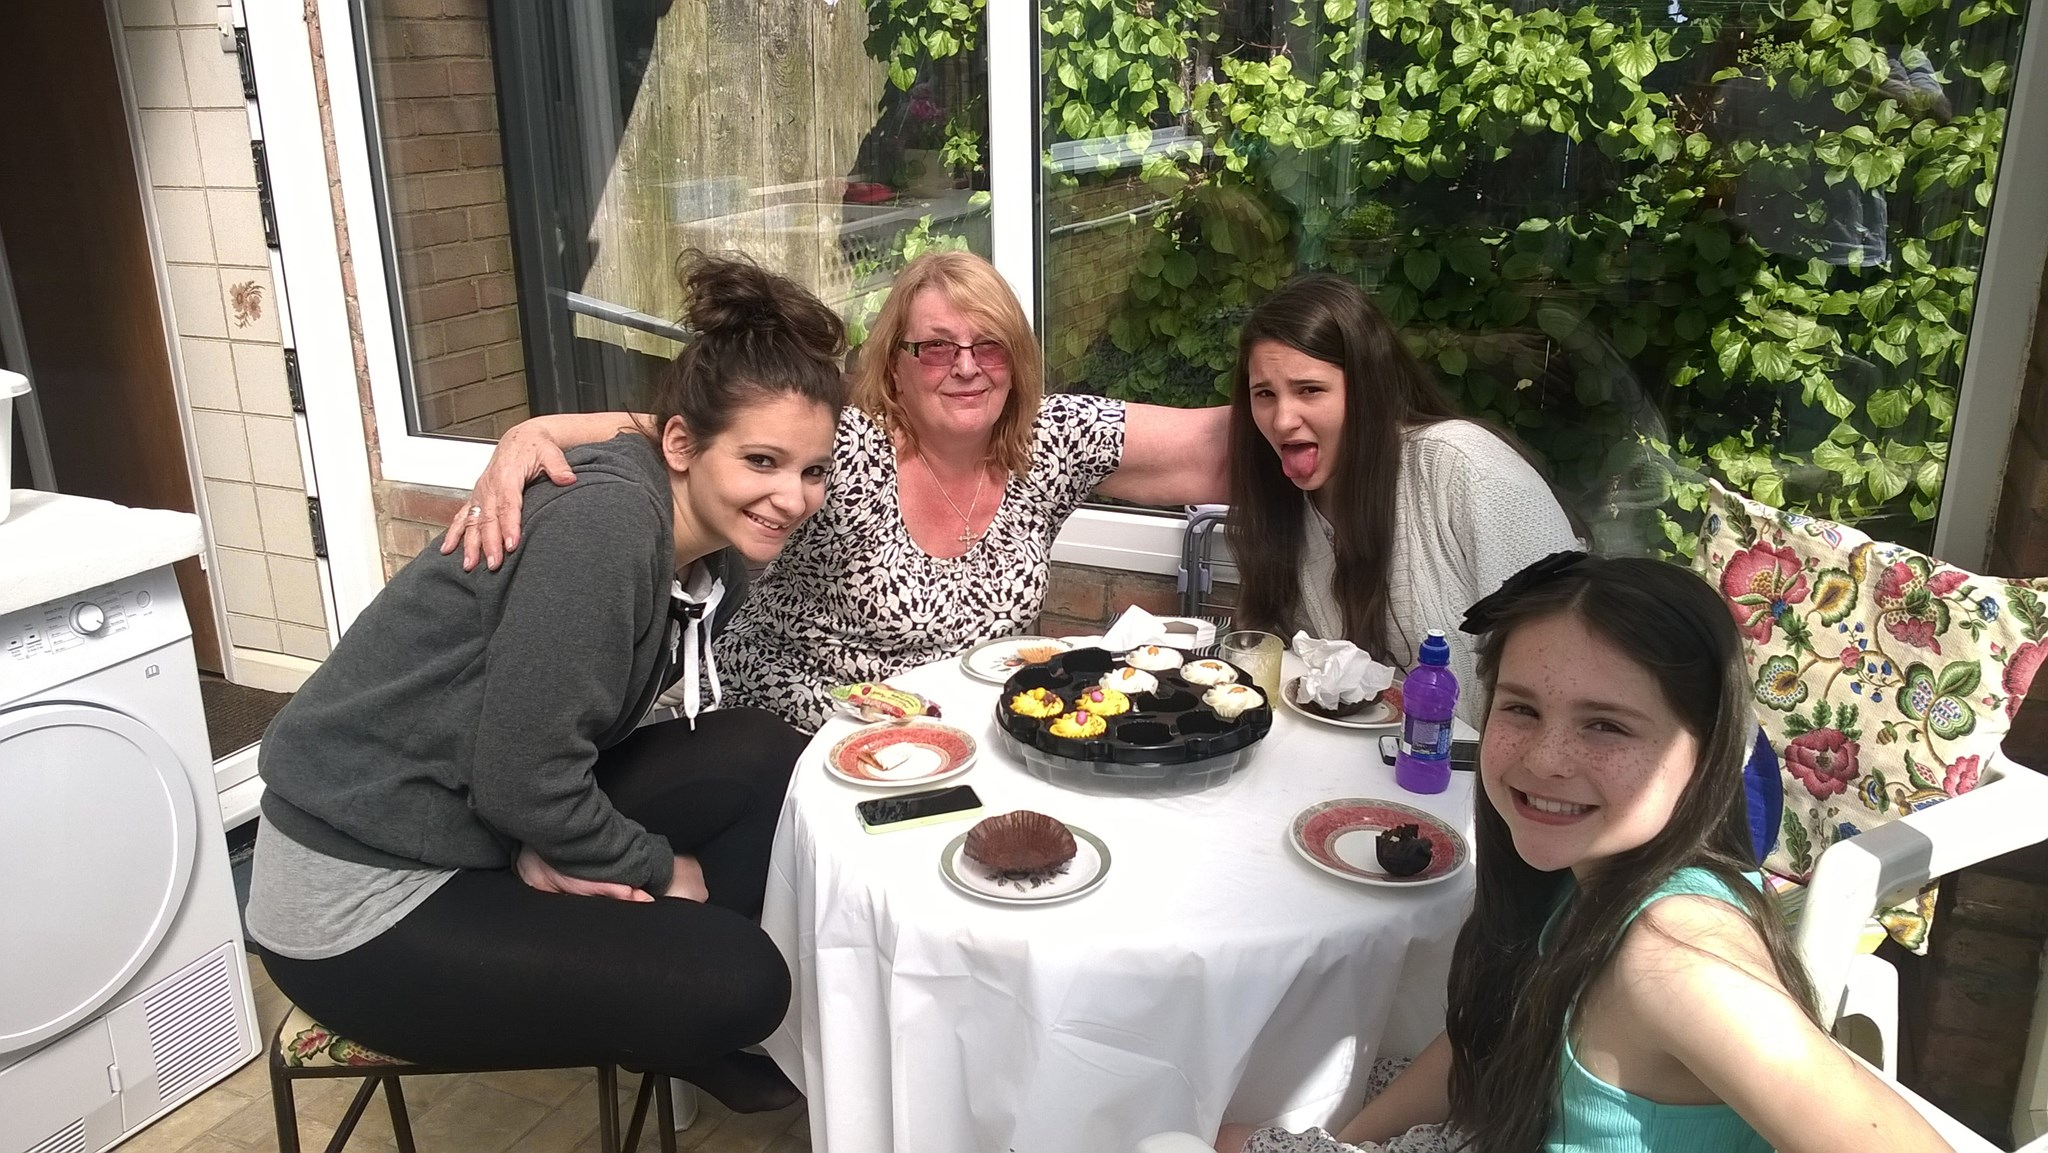 Uploaded for Ray. With her girls April 2014